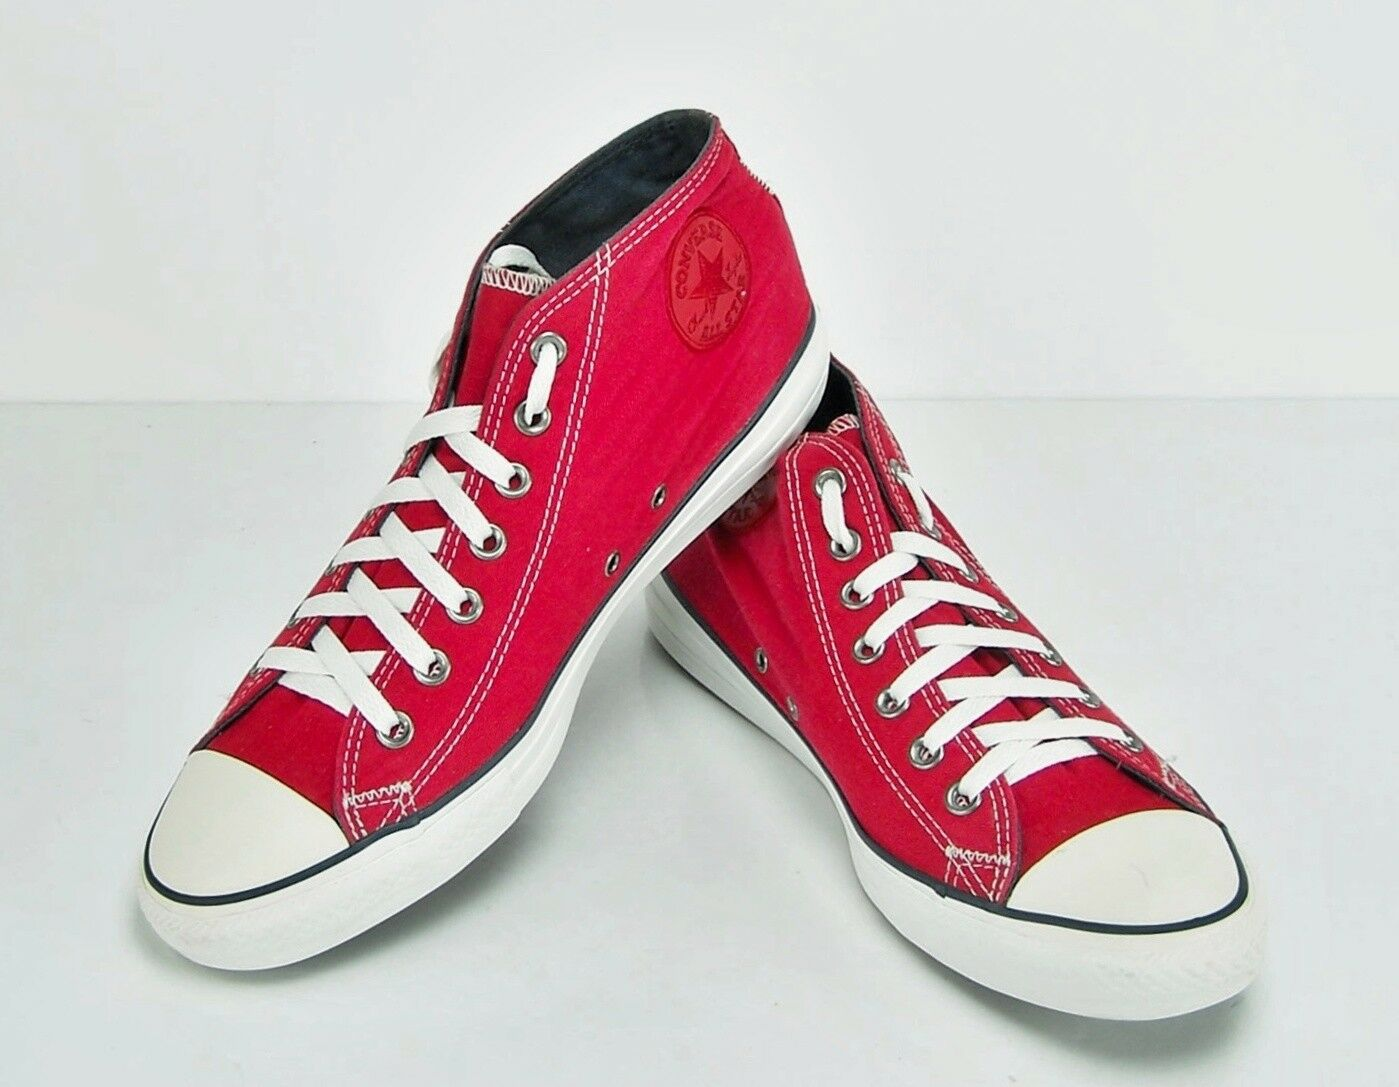 CONVERSE CHUCK TAYLOR ALL STAR MEN'S SIZE 11 HI TOP JESTER RED Model 134583F